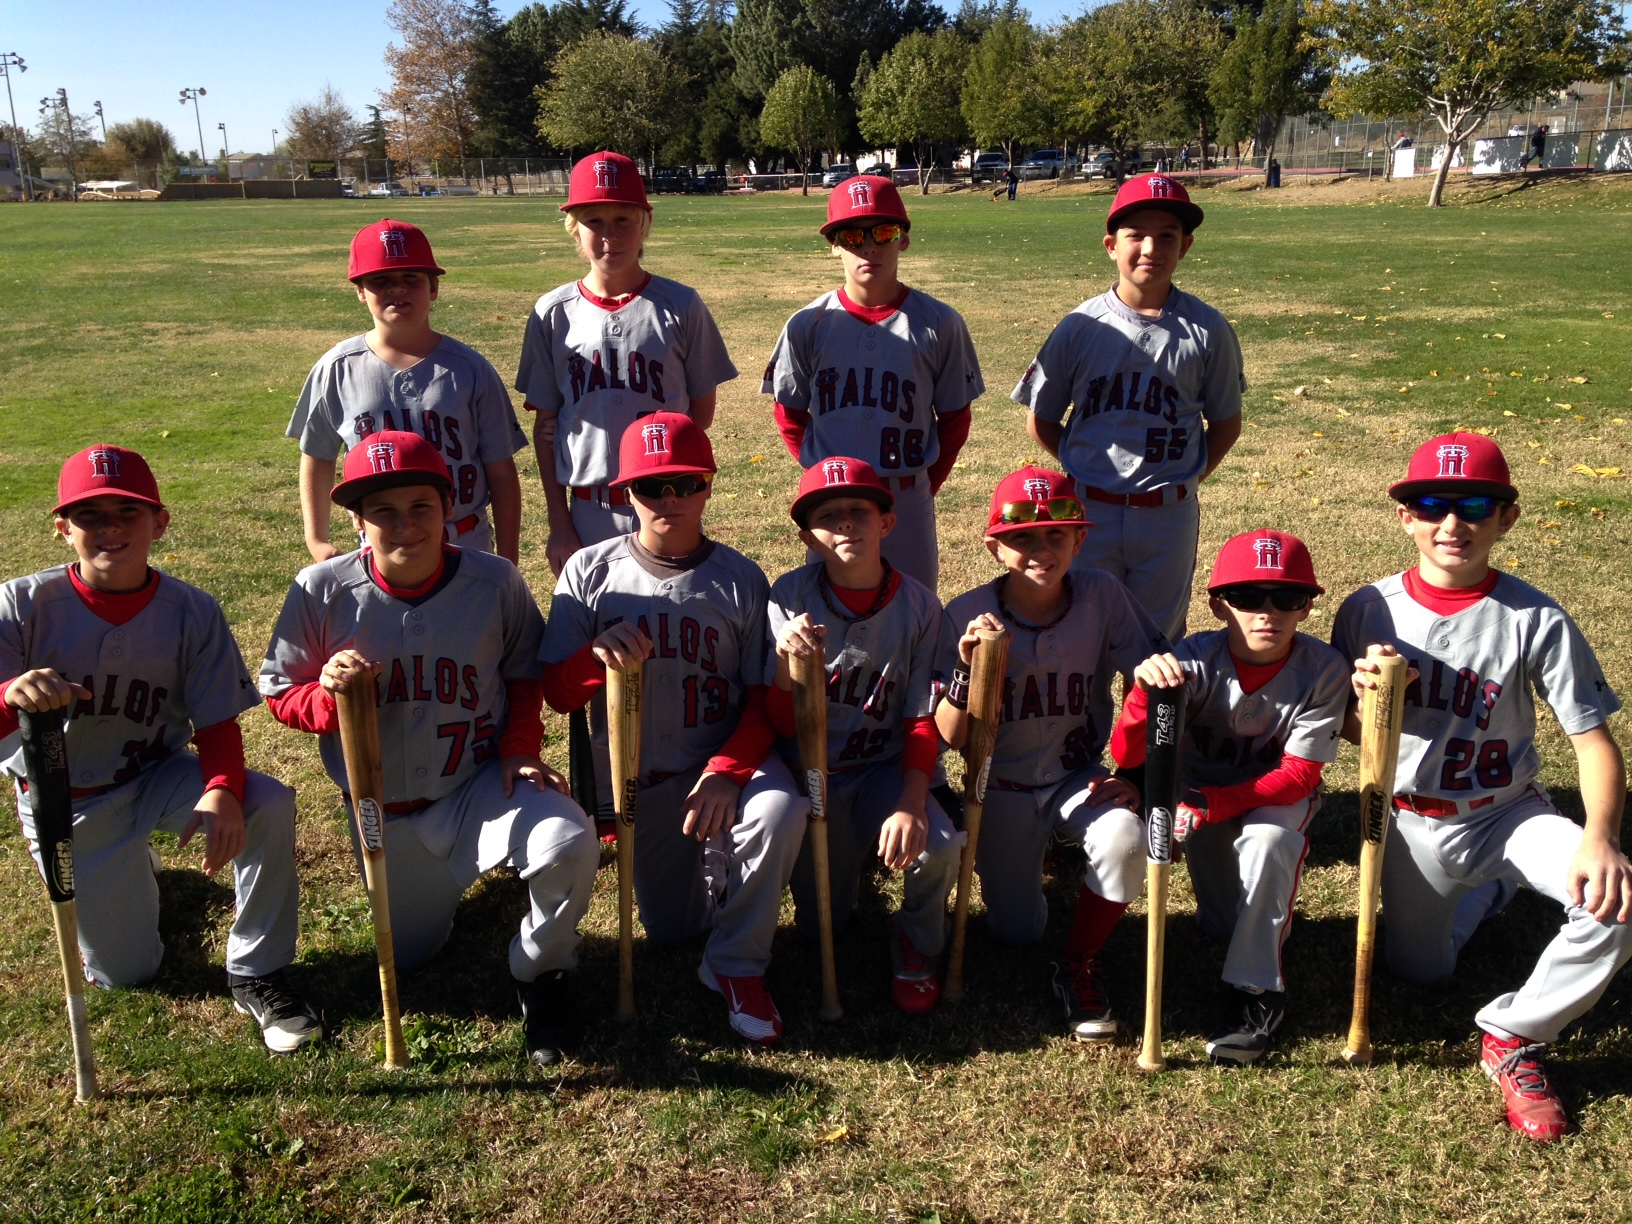 Travel Baseball Teams in Temecula, Murrieta, Menifee | Temecula